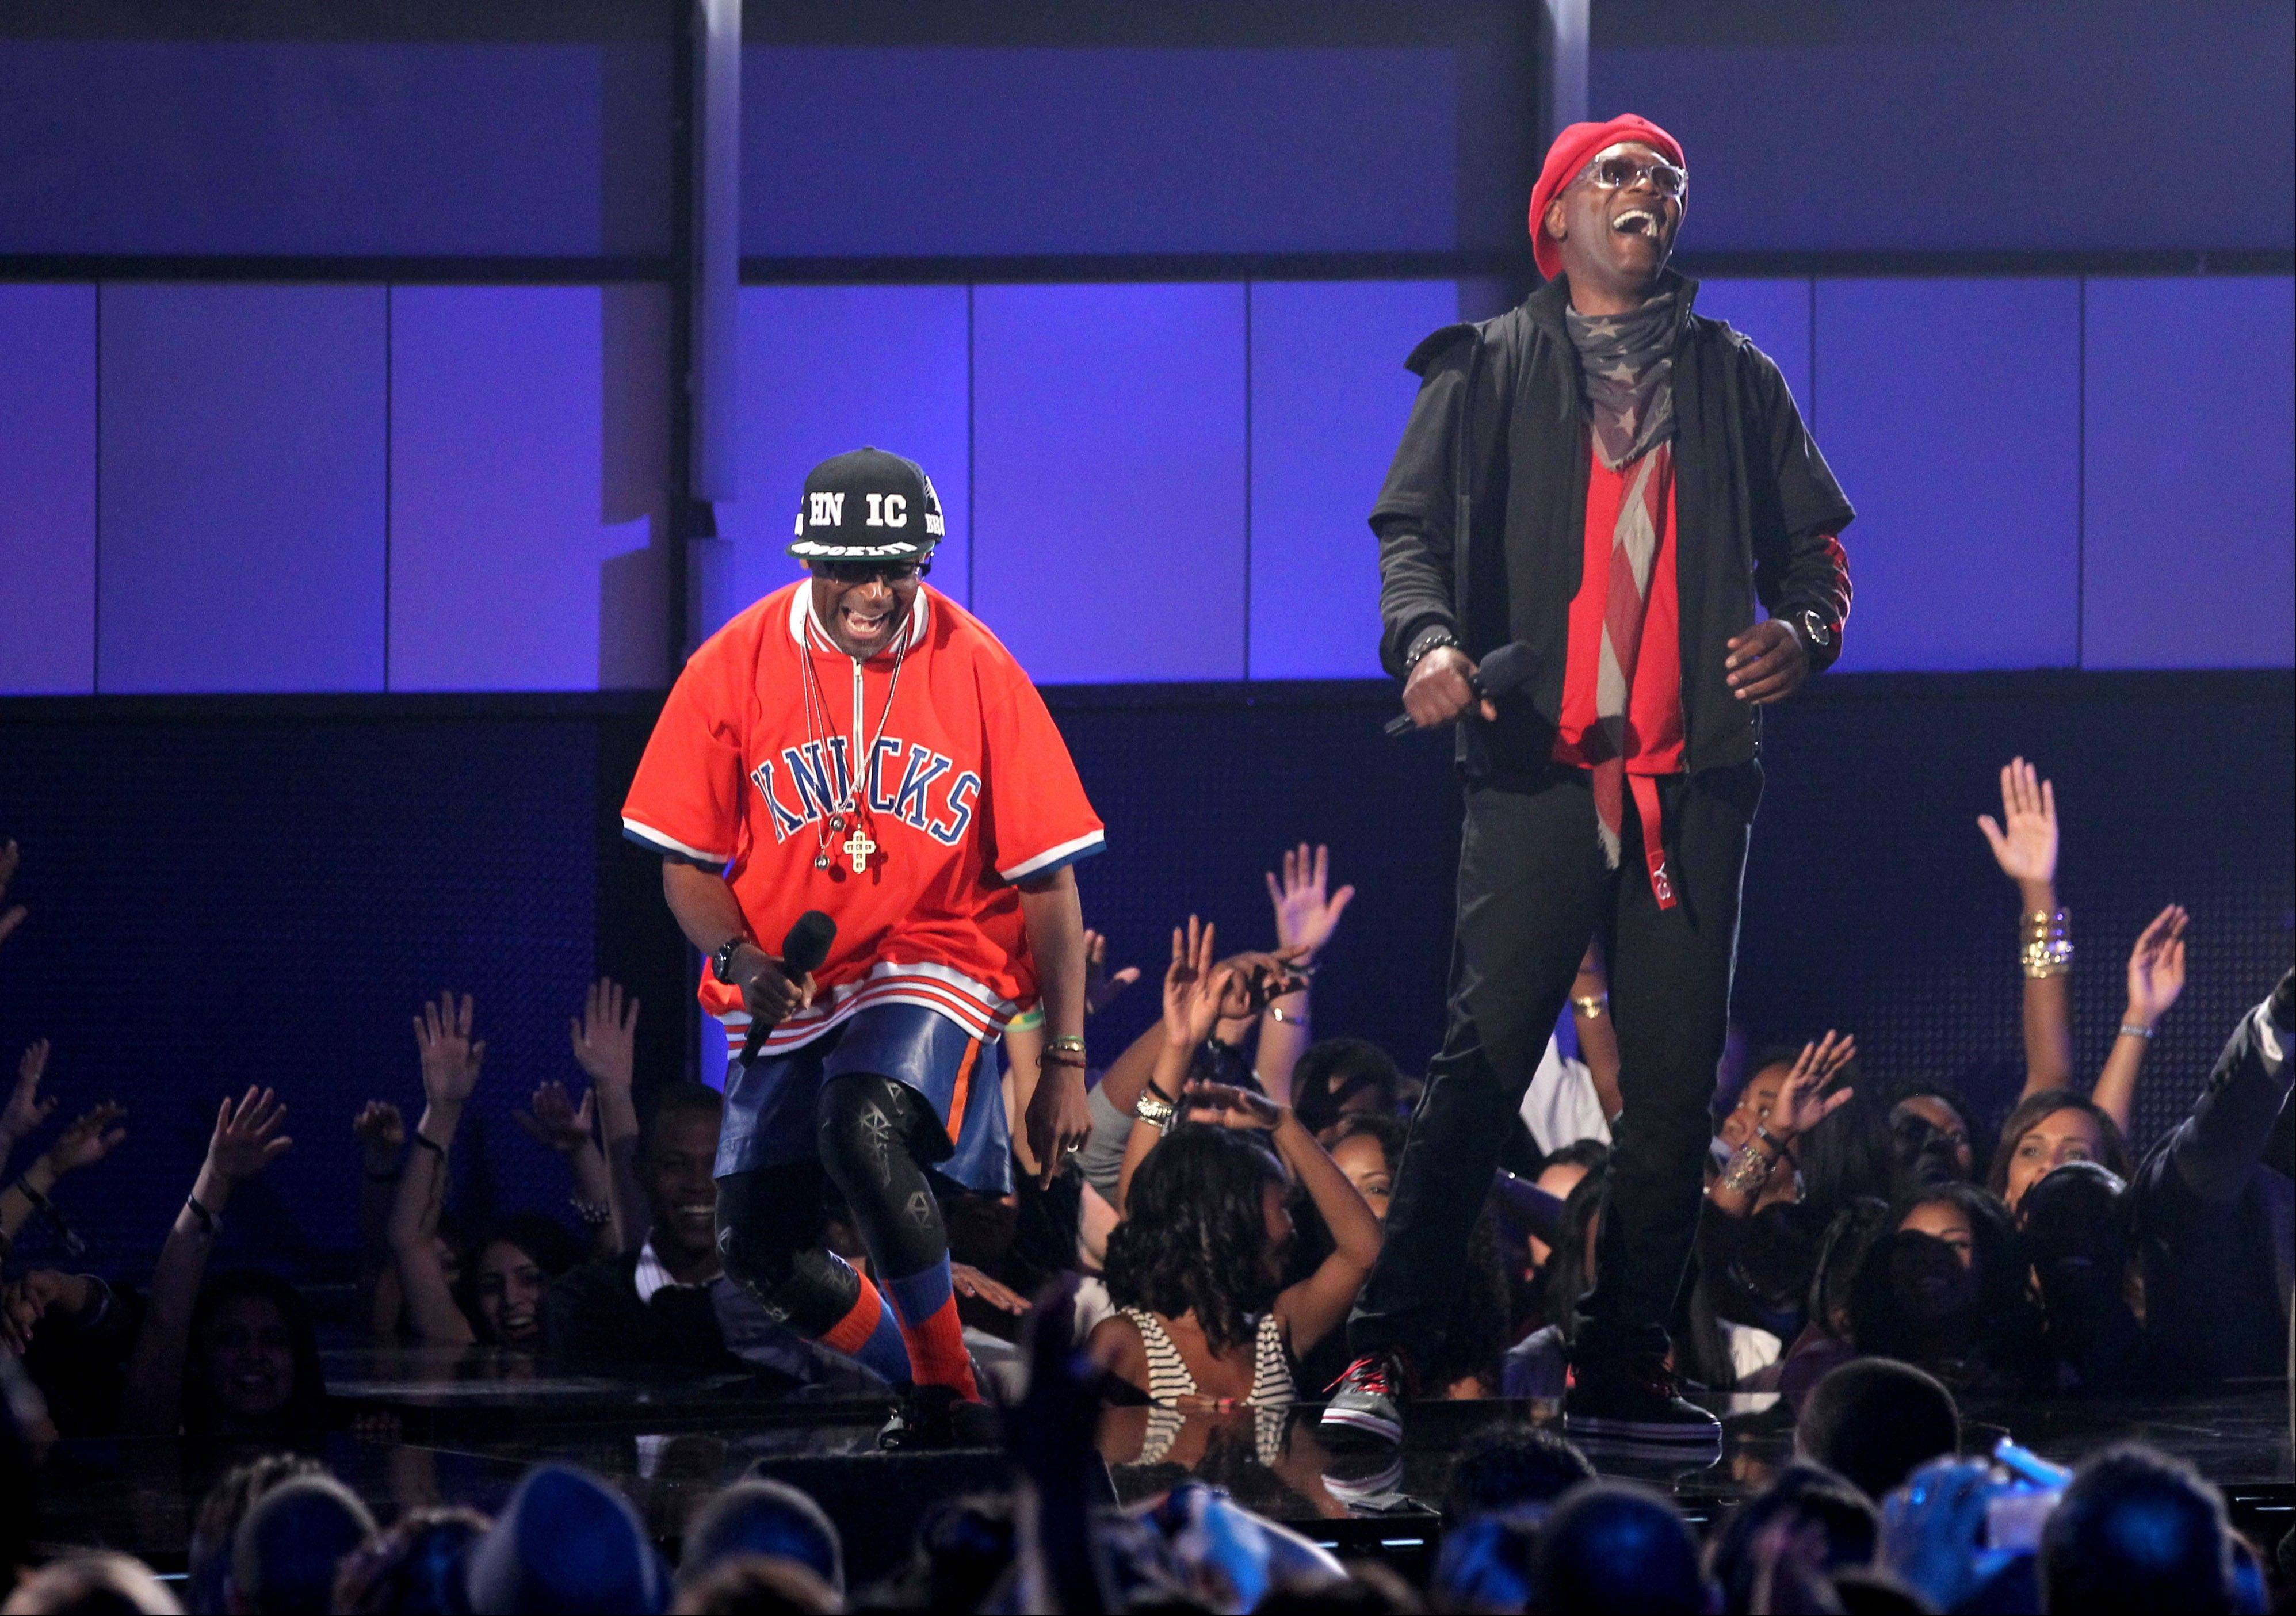 Host Samuel L. Jackson, right, and Spike Lee appear on stage at the BET Awards on Sunday in Los Angeles.